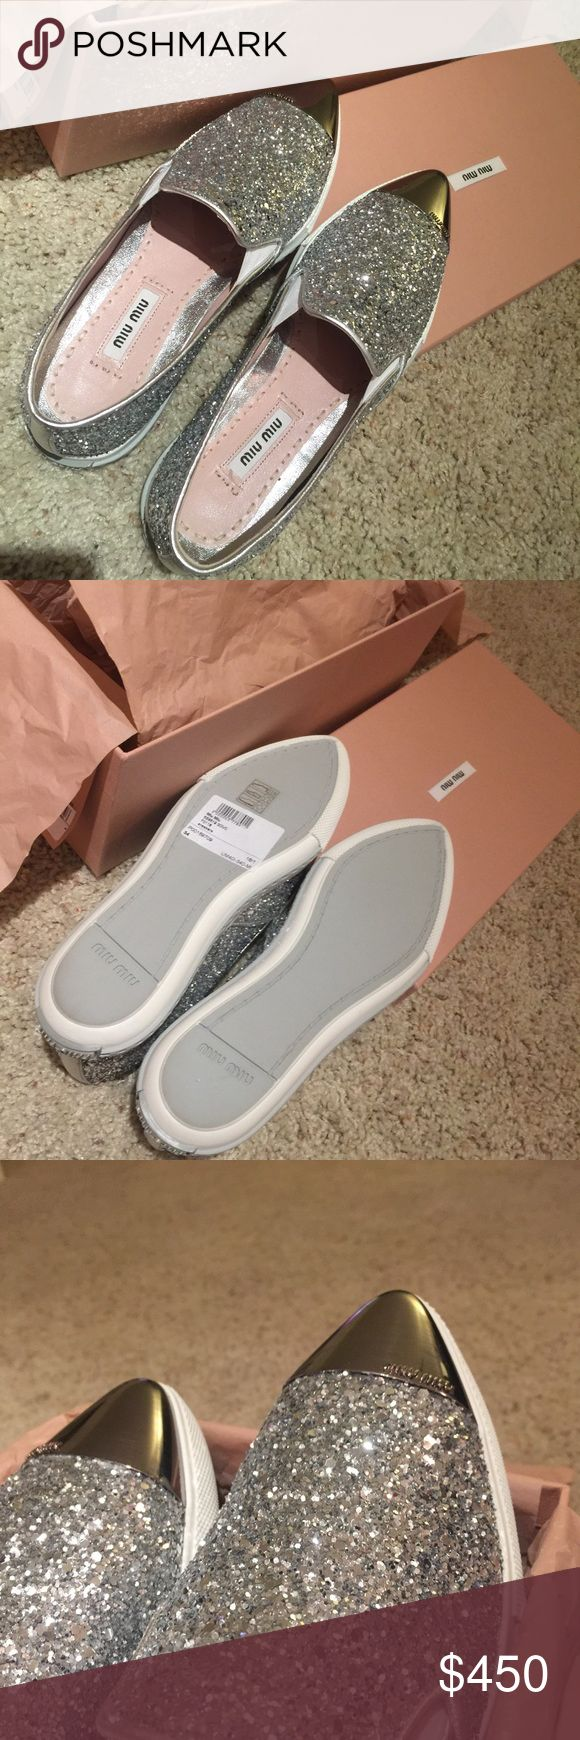 Miu Miu Metal Toe Cap Slip-on Sneakers Brand New Authentic Miu Miu Metal Toe Cap Slipon Sneakers. Size 34 but fits 35 since Miu Miu runs big. Color: Gorgeous Sparkling Silver. $400 via P or Mercari. FIRM. MSRP :: $535. Serious Buyers Only. NO TRADE. Miu Miu Shoes Sneakers